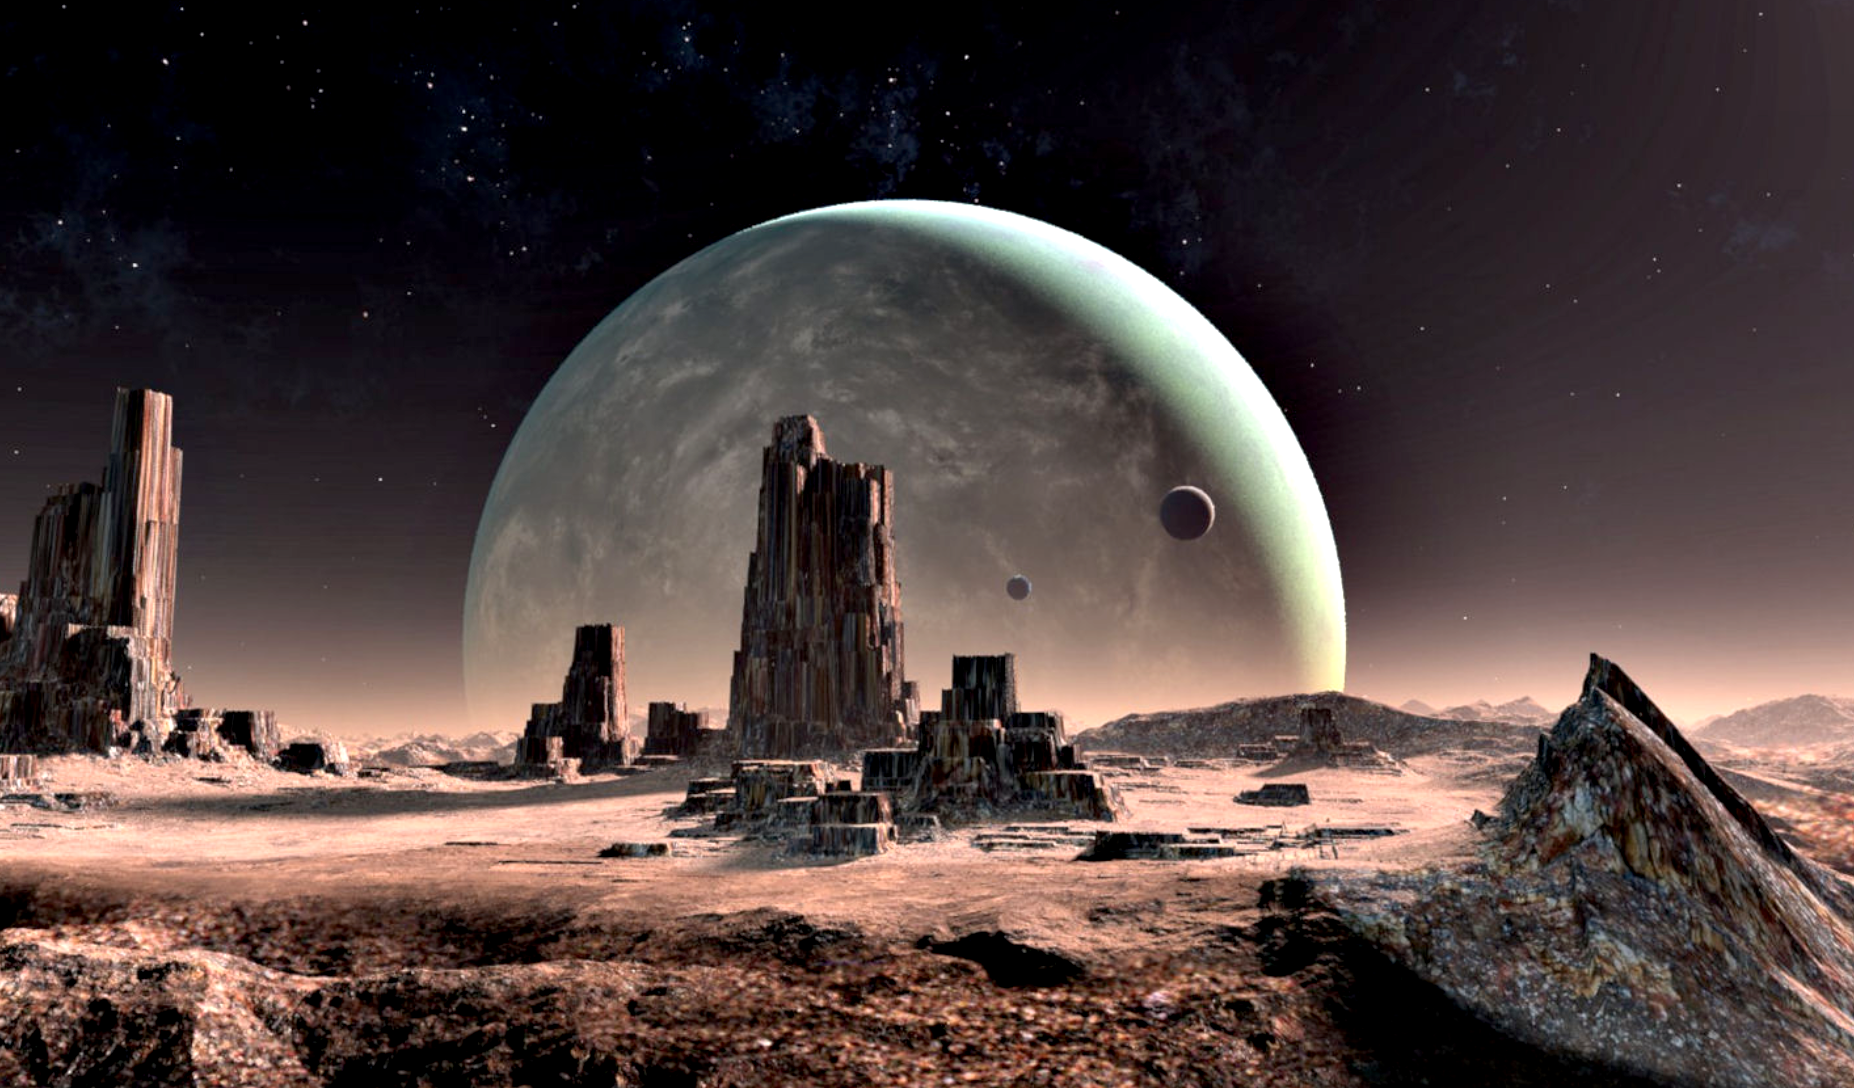 Foreign planet